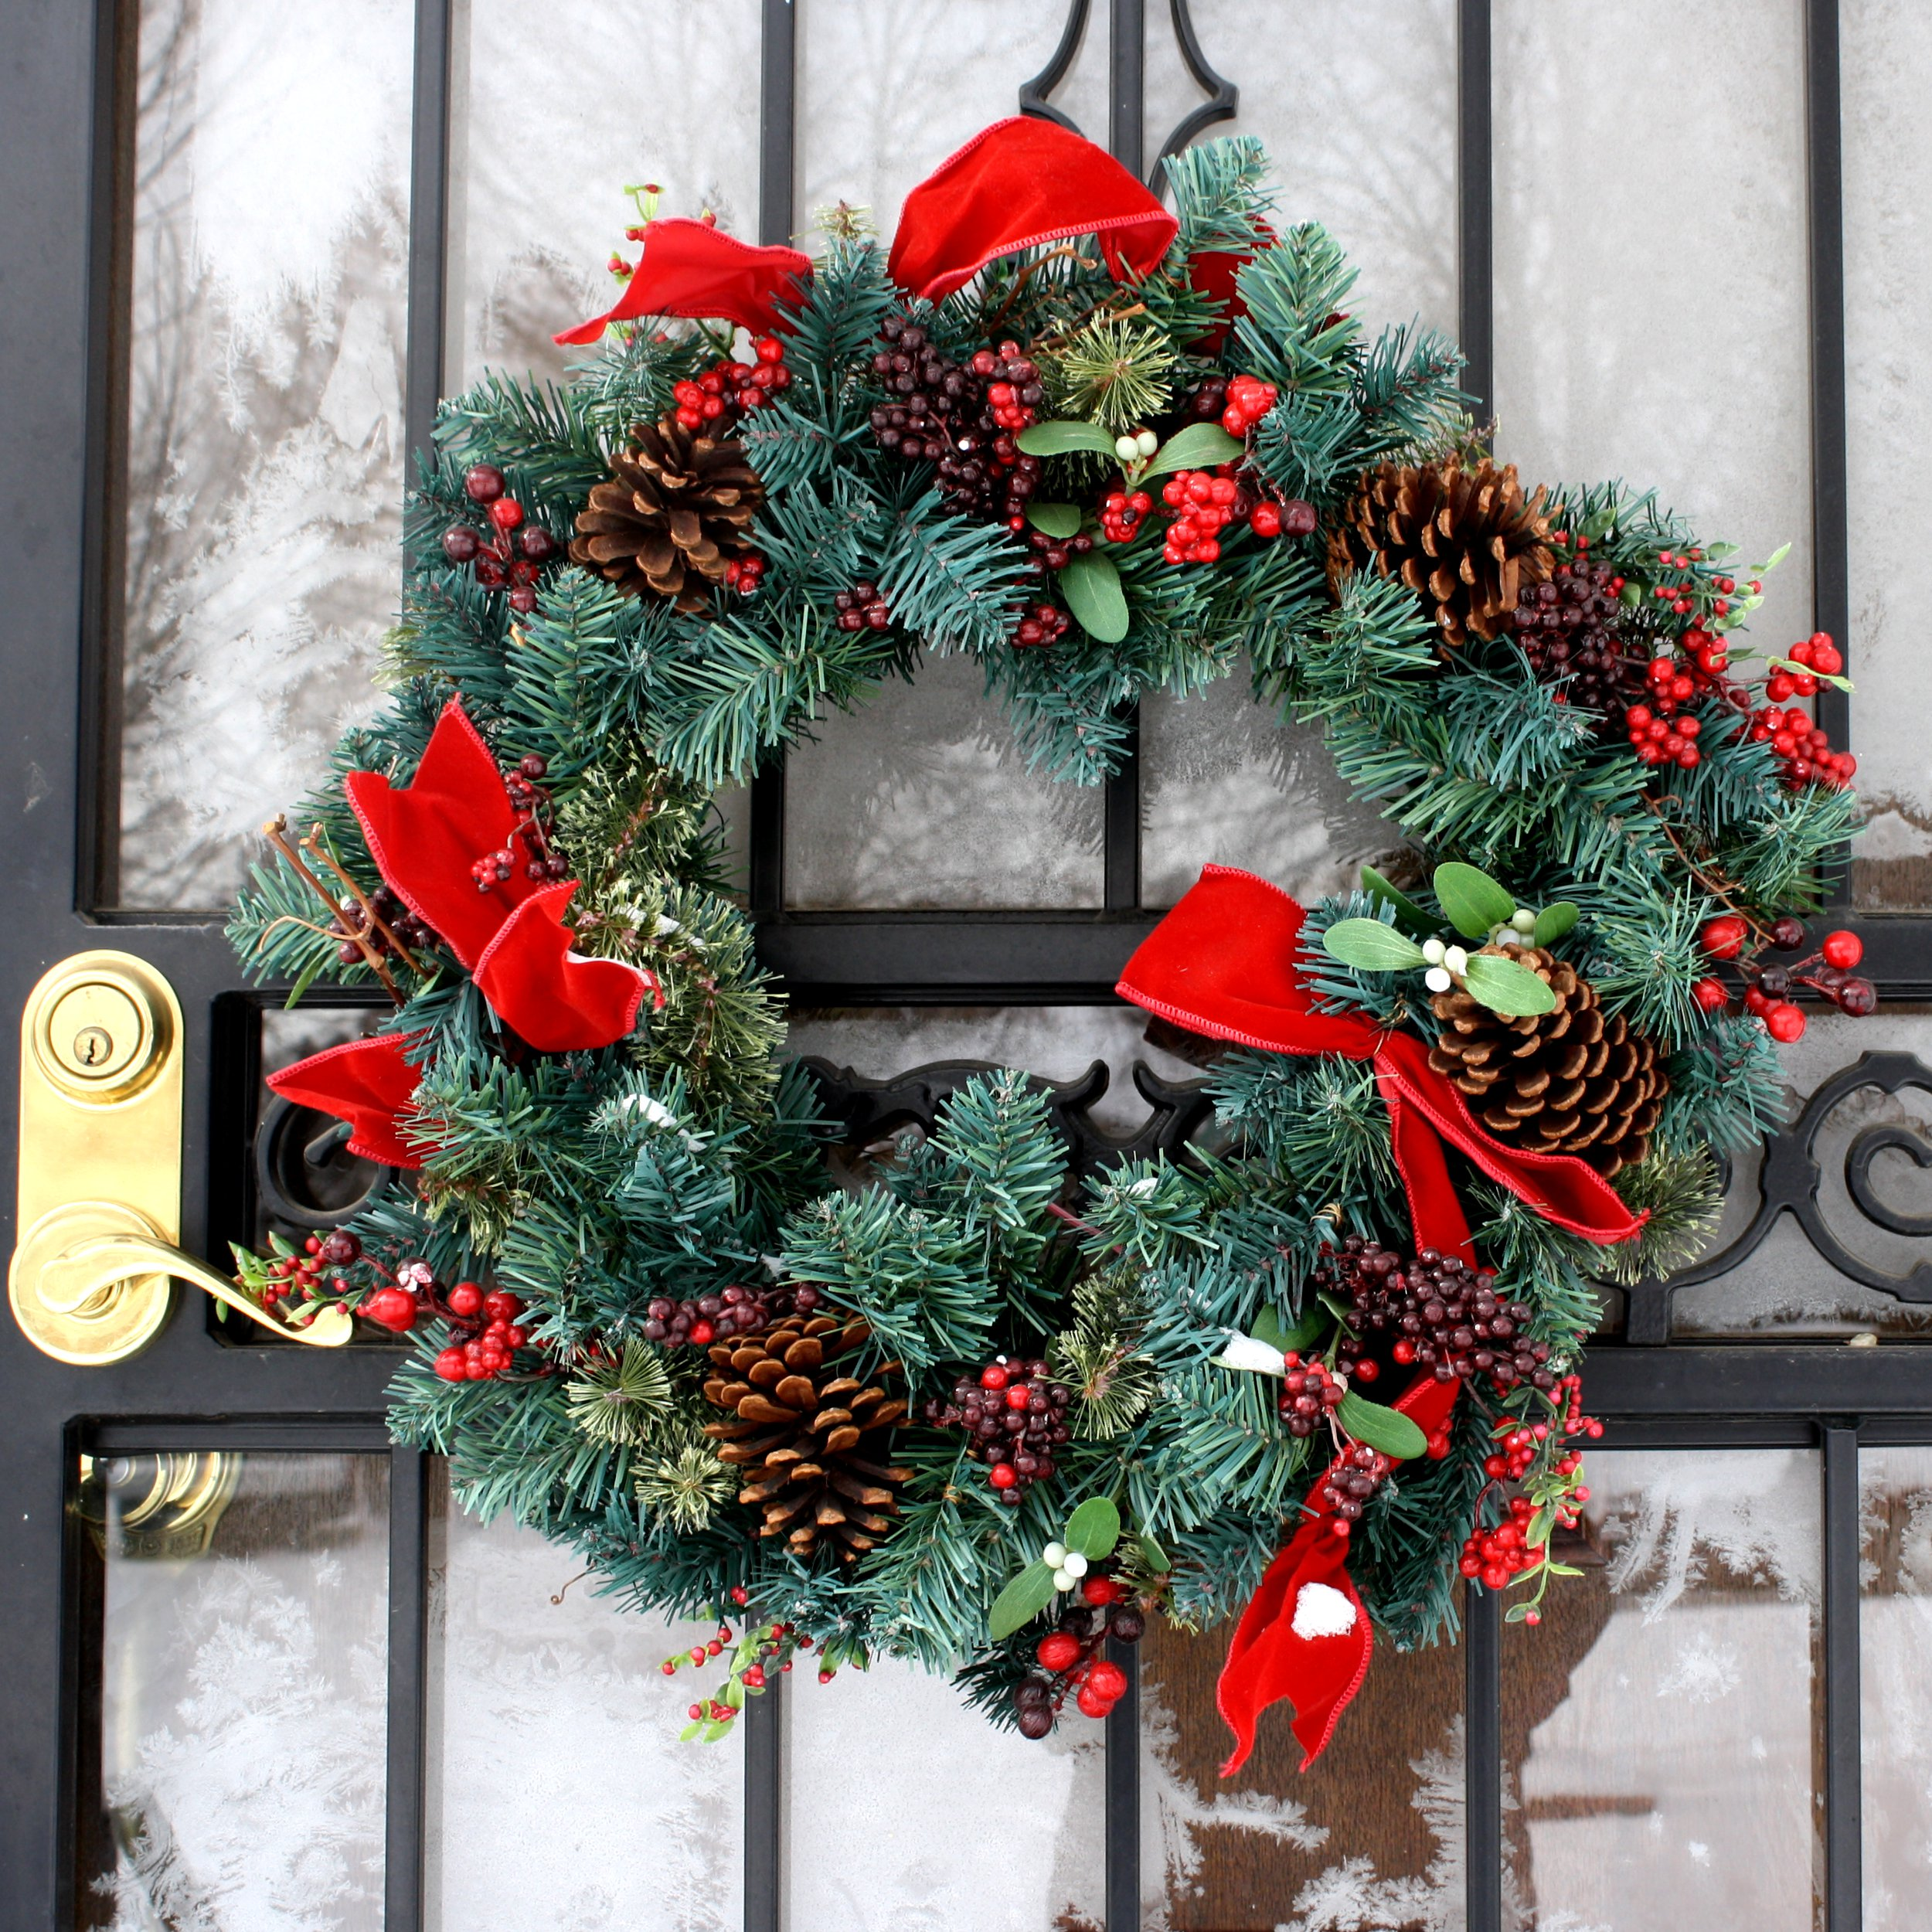 Holiday Decorating With Cut Greenery